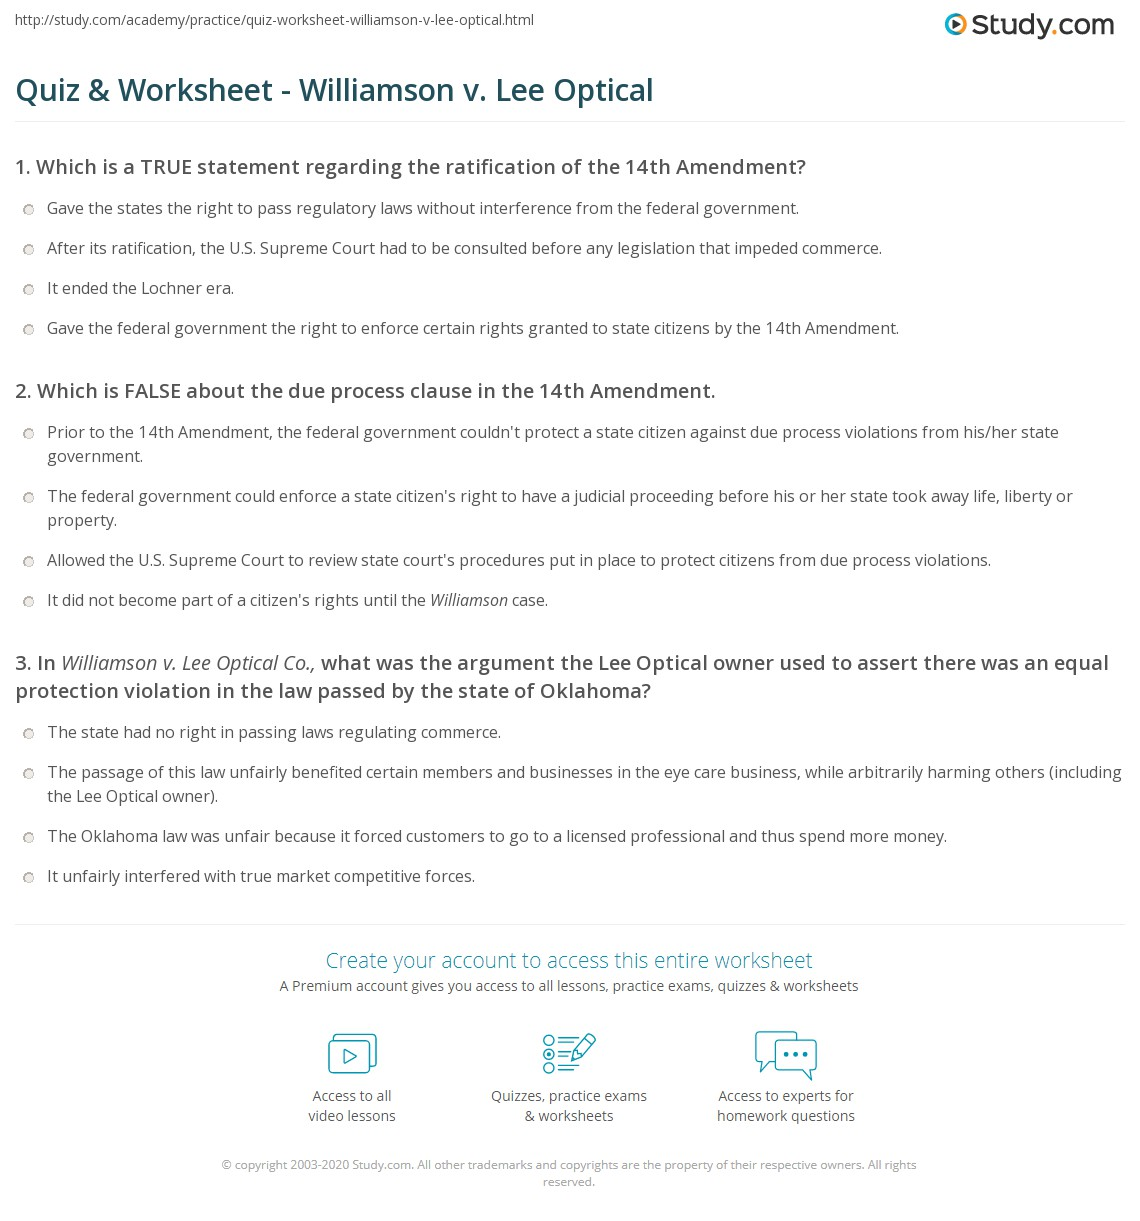 quiz worksheet williamson v lee optical. Black Bedroom Furniture Sets. Home Design Ideas